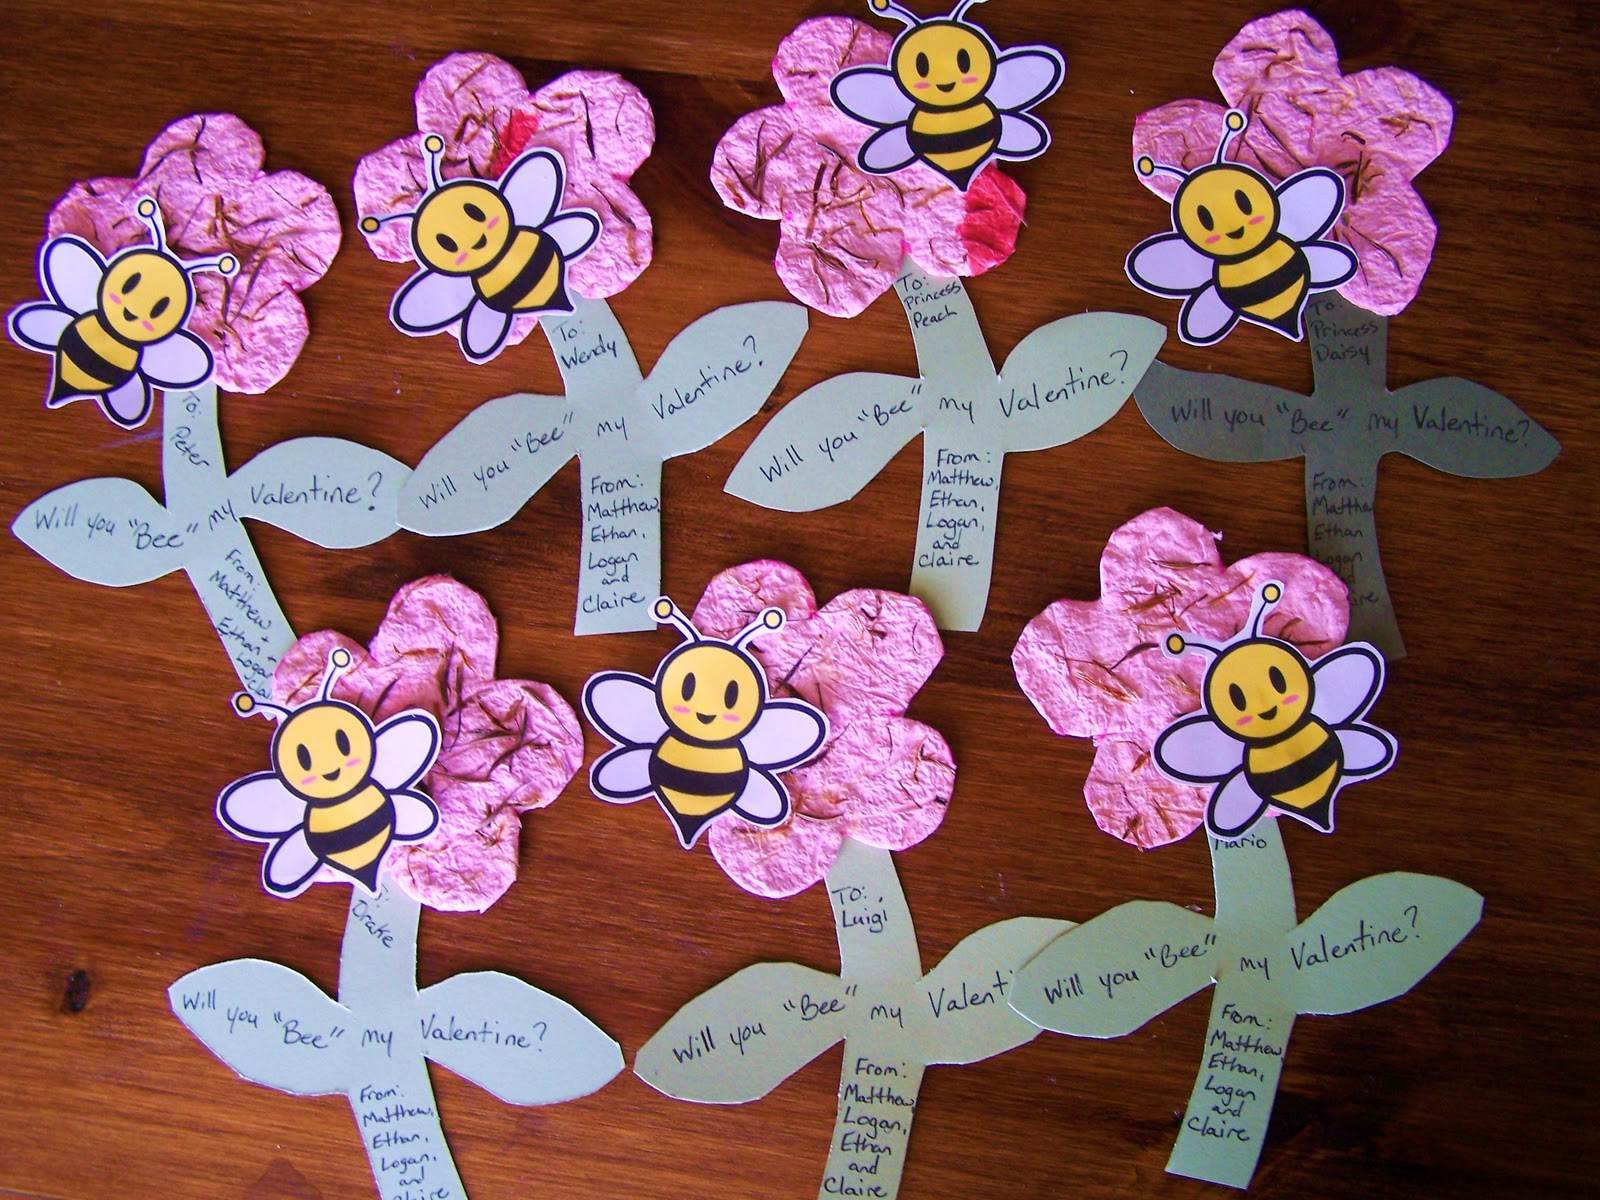 At the Butterfly Ball Will you Bee my Valentine – Bee My Valentine Card